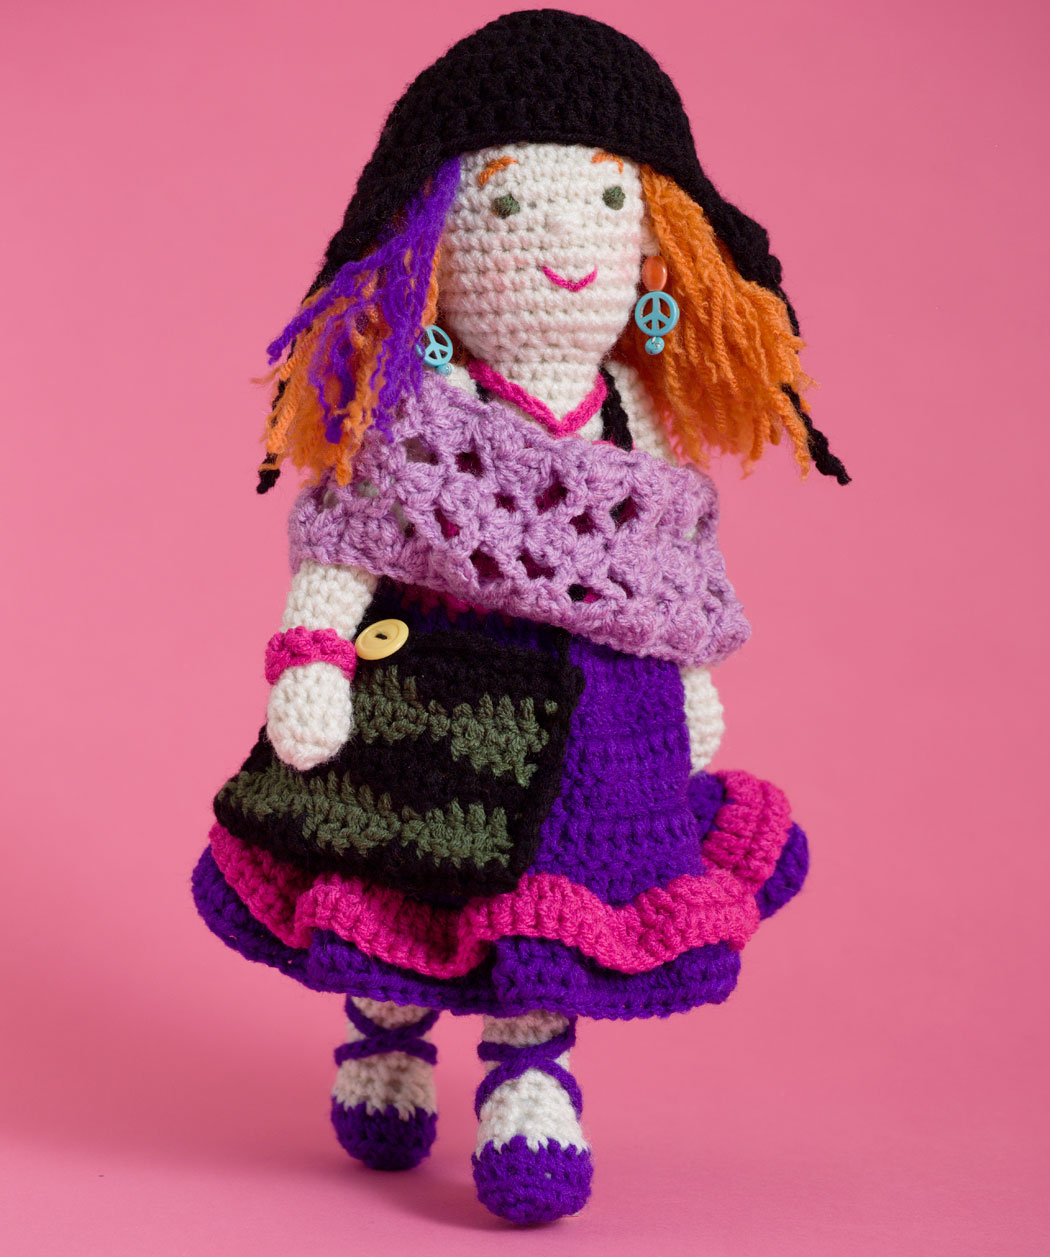 Free Amigurumi Patterns Artistic Annie Doll Crochet Pattern